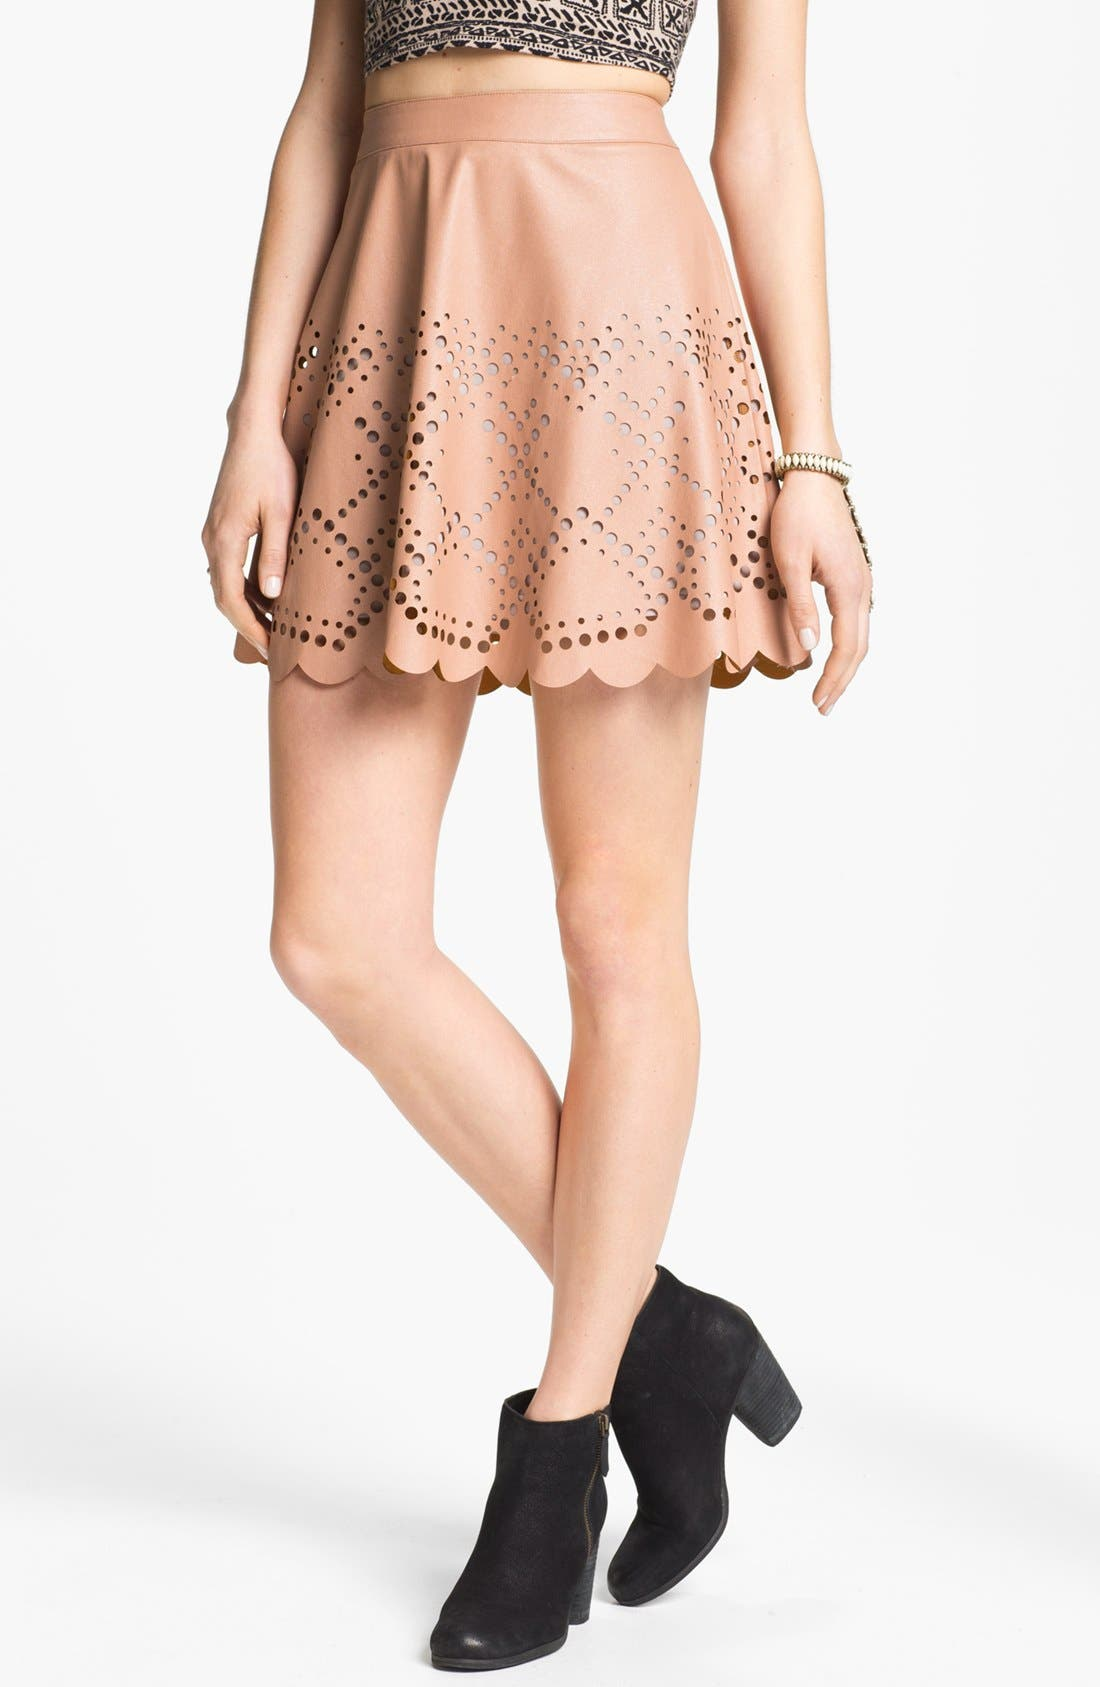 Alternate Image 1 Selected - Blu Pepper Laser Cut Faux Leather Skirt (Juniors) (Online Exclusive)